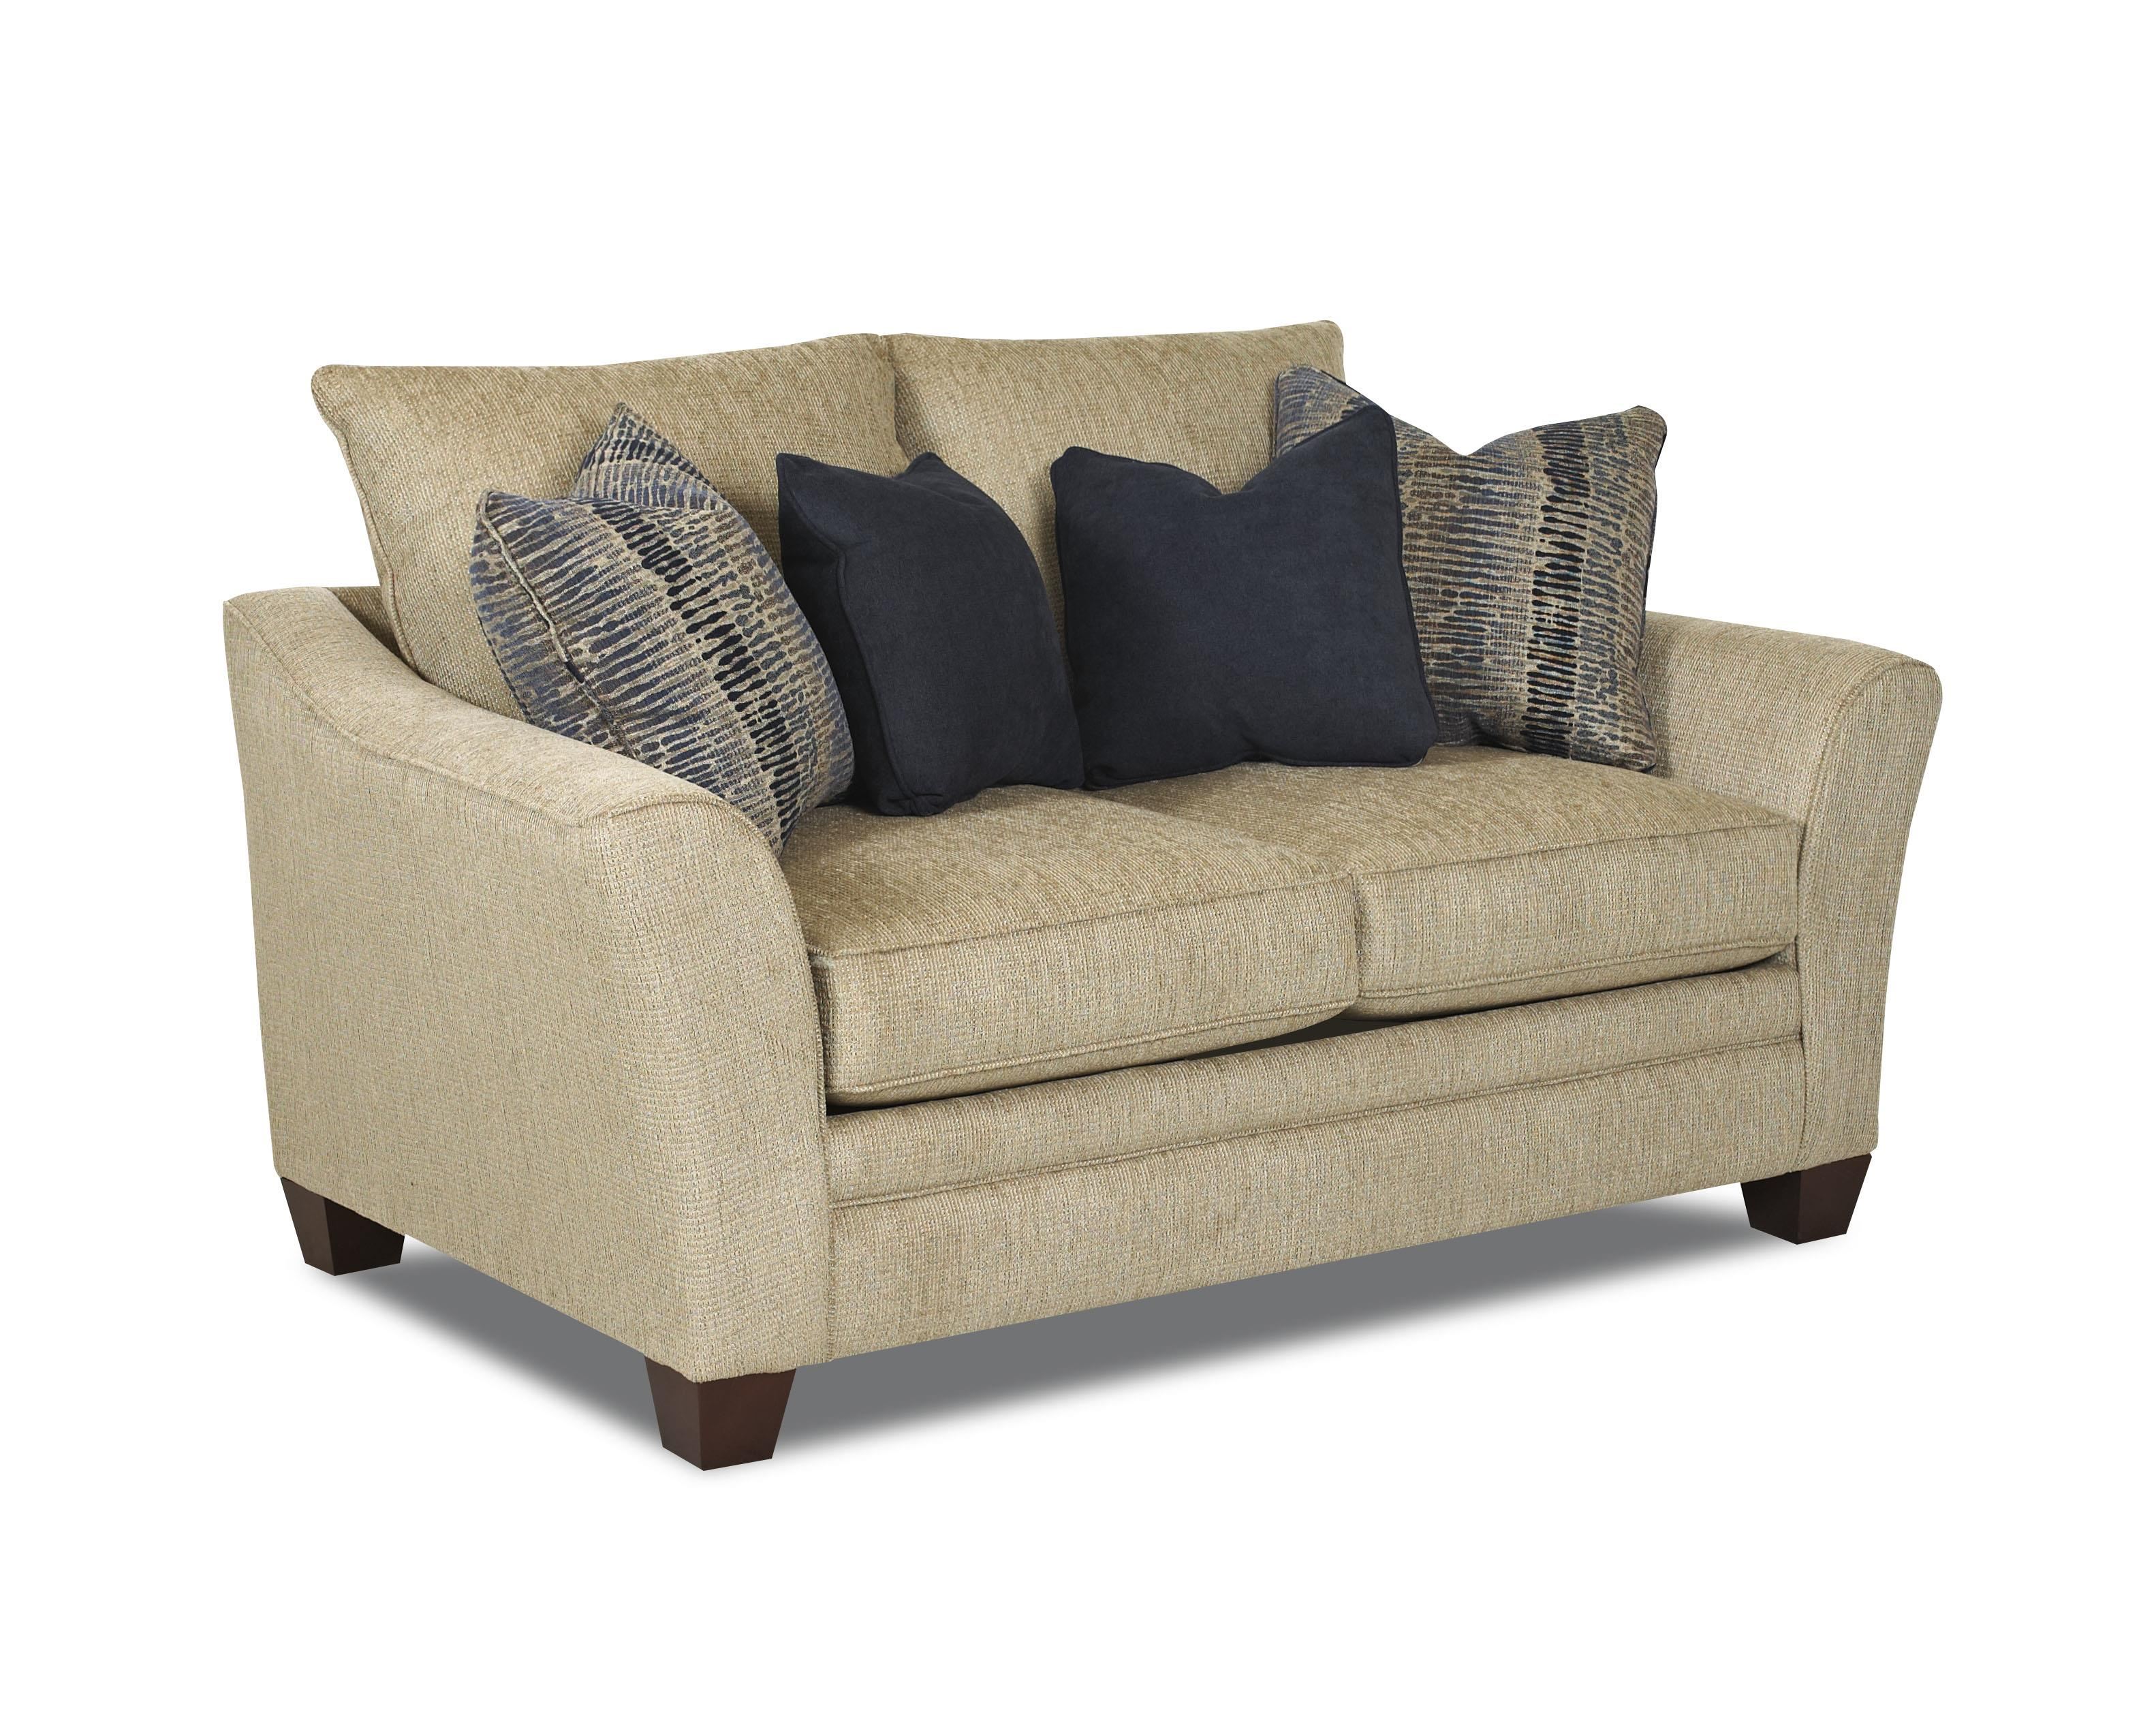 Posen Contemporary Loveseat by Klaussner at Johnny Janosik